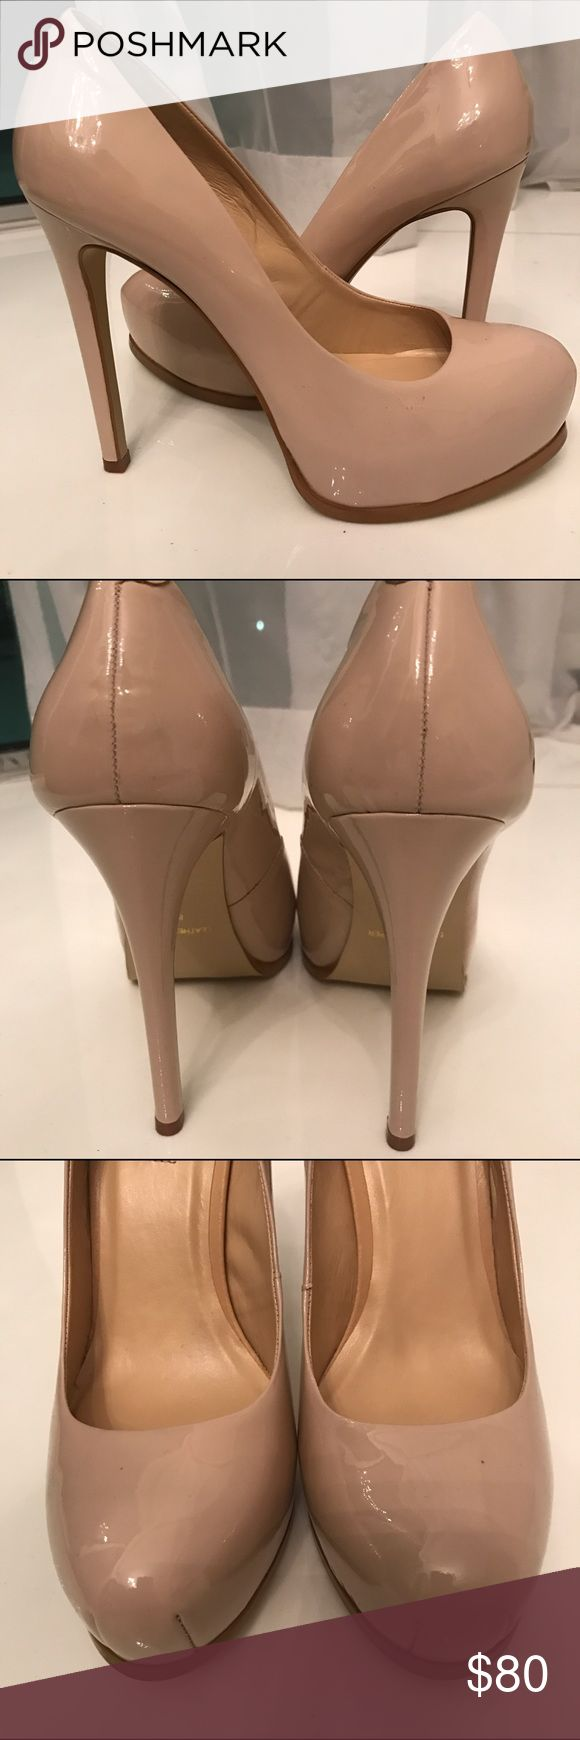 Kelsi Dagger Linzy Patent Leather Pump Kelsi Dagger Linzy Patent Leather pump in Nude/Sand. Brand New never worn. Kelsi Dagger Shoes Heels